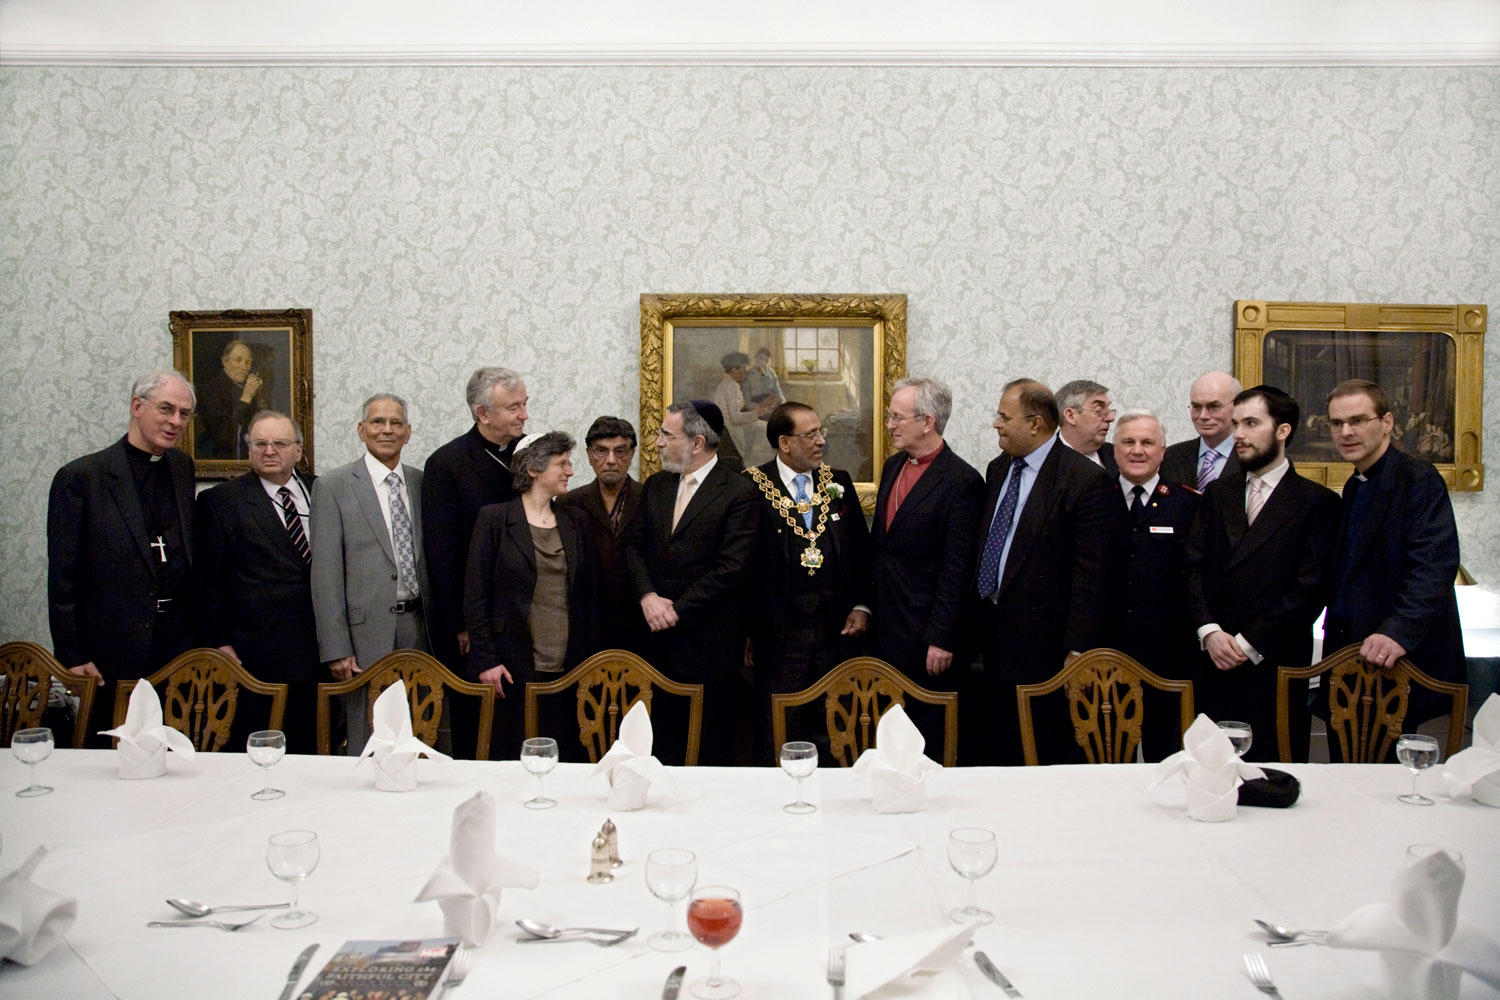 Once a year, representatives of Birmingham's Buddhists, Christians, Jews, Jains, Muslims and Sikhs gather for dinner in Birmingham Town Hall. The quick and formal meal displays differing dietary requirements. 2007-2009.